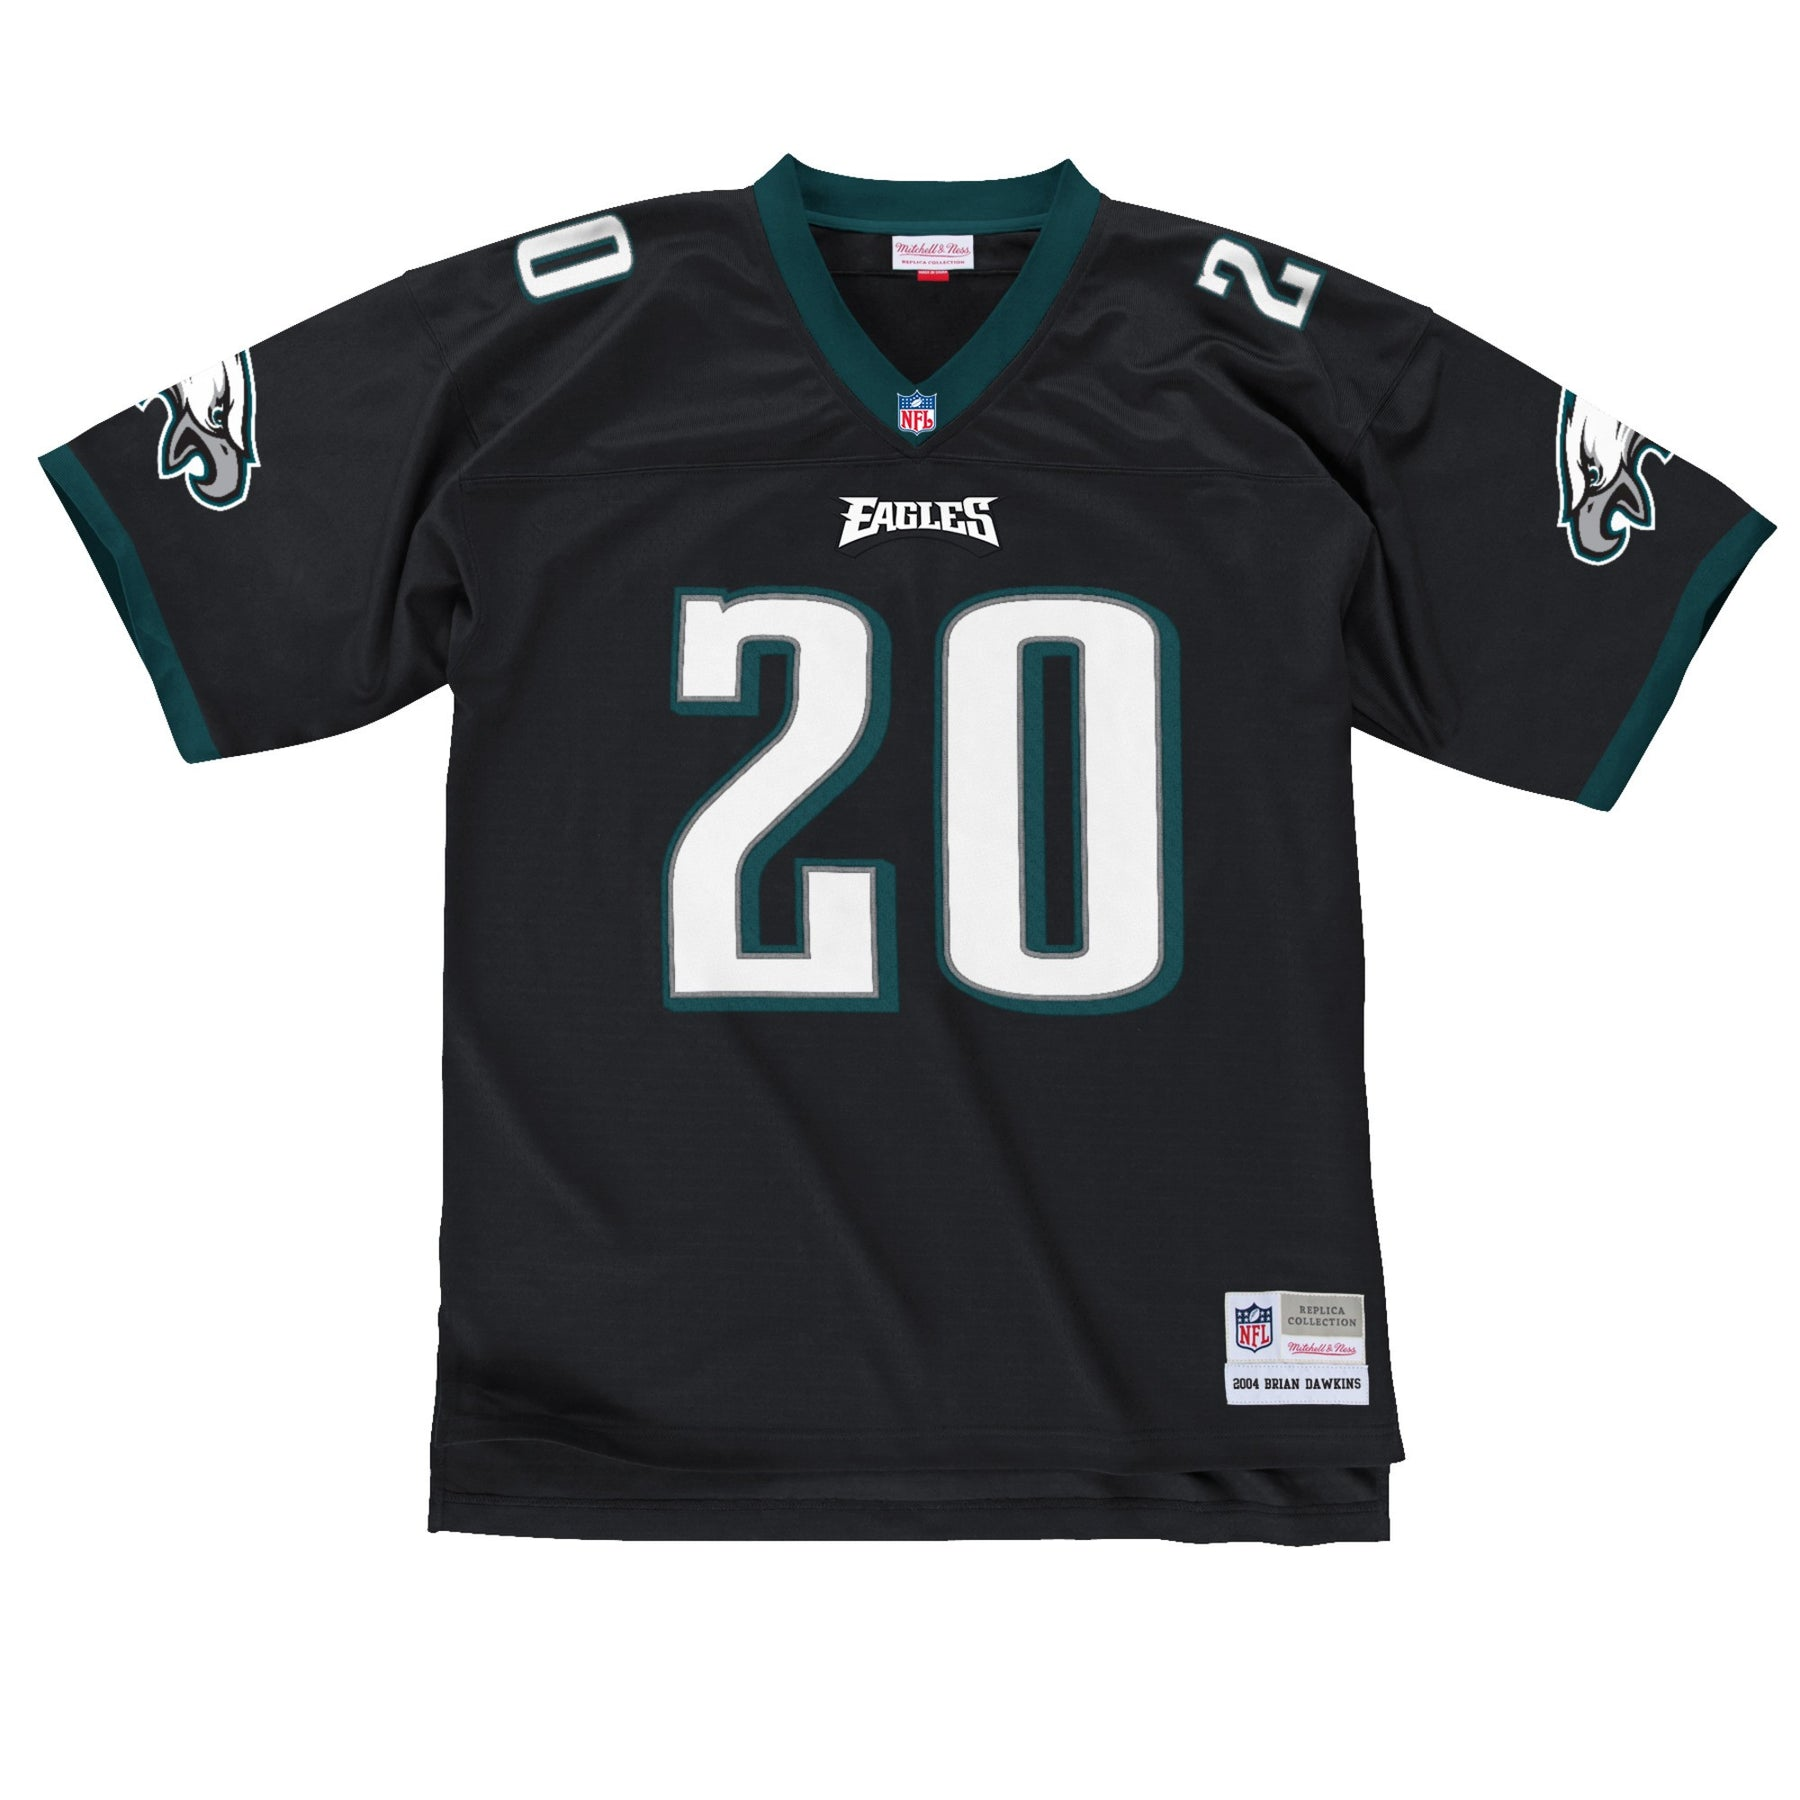 6c3408426bd The black brian dawkins throwback philadelphia eagles jersey is black, on  the front is the